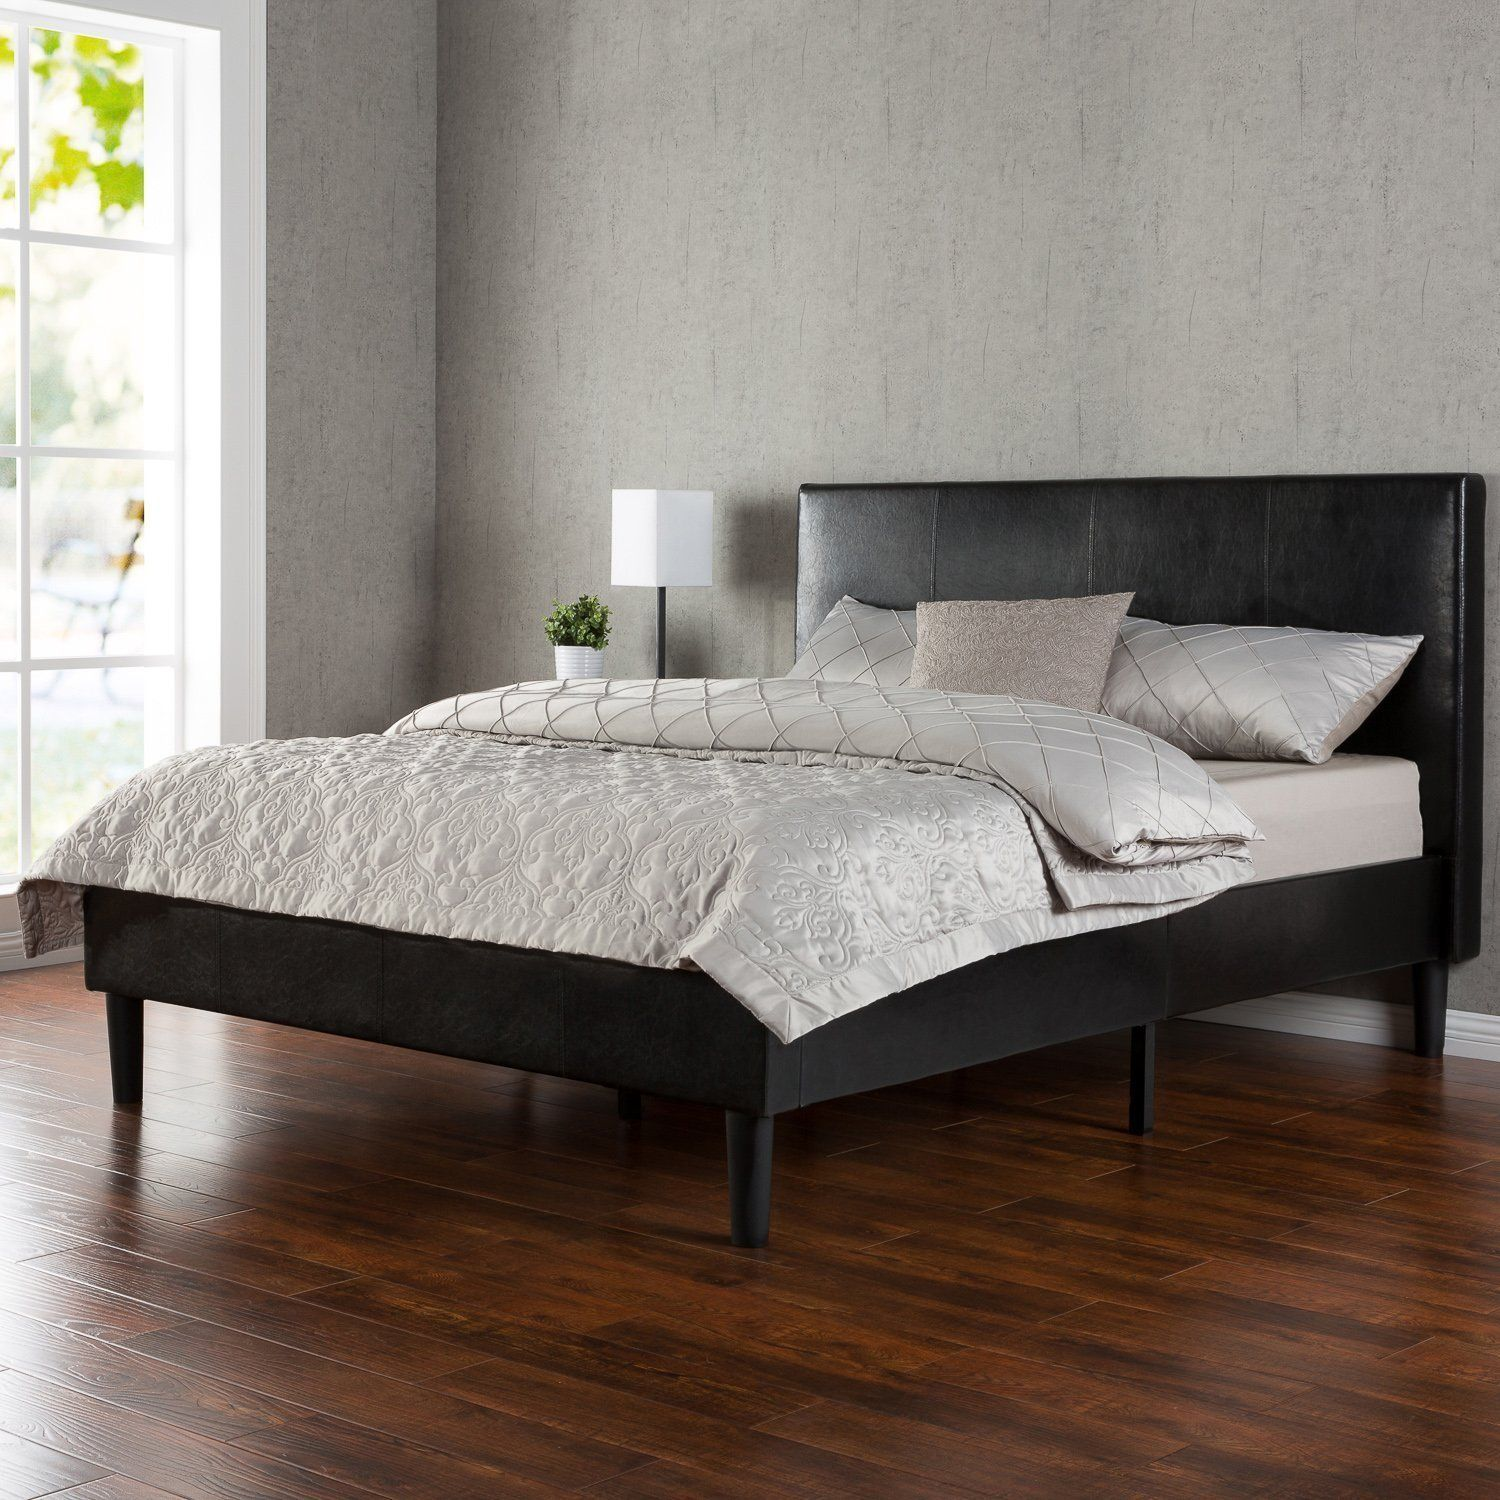 Amazon.com: Zinus Deluxe Faux Leather Upholstered Platform Bed with ...